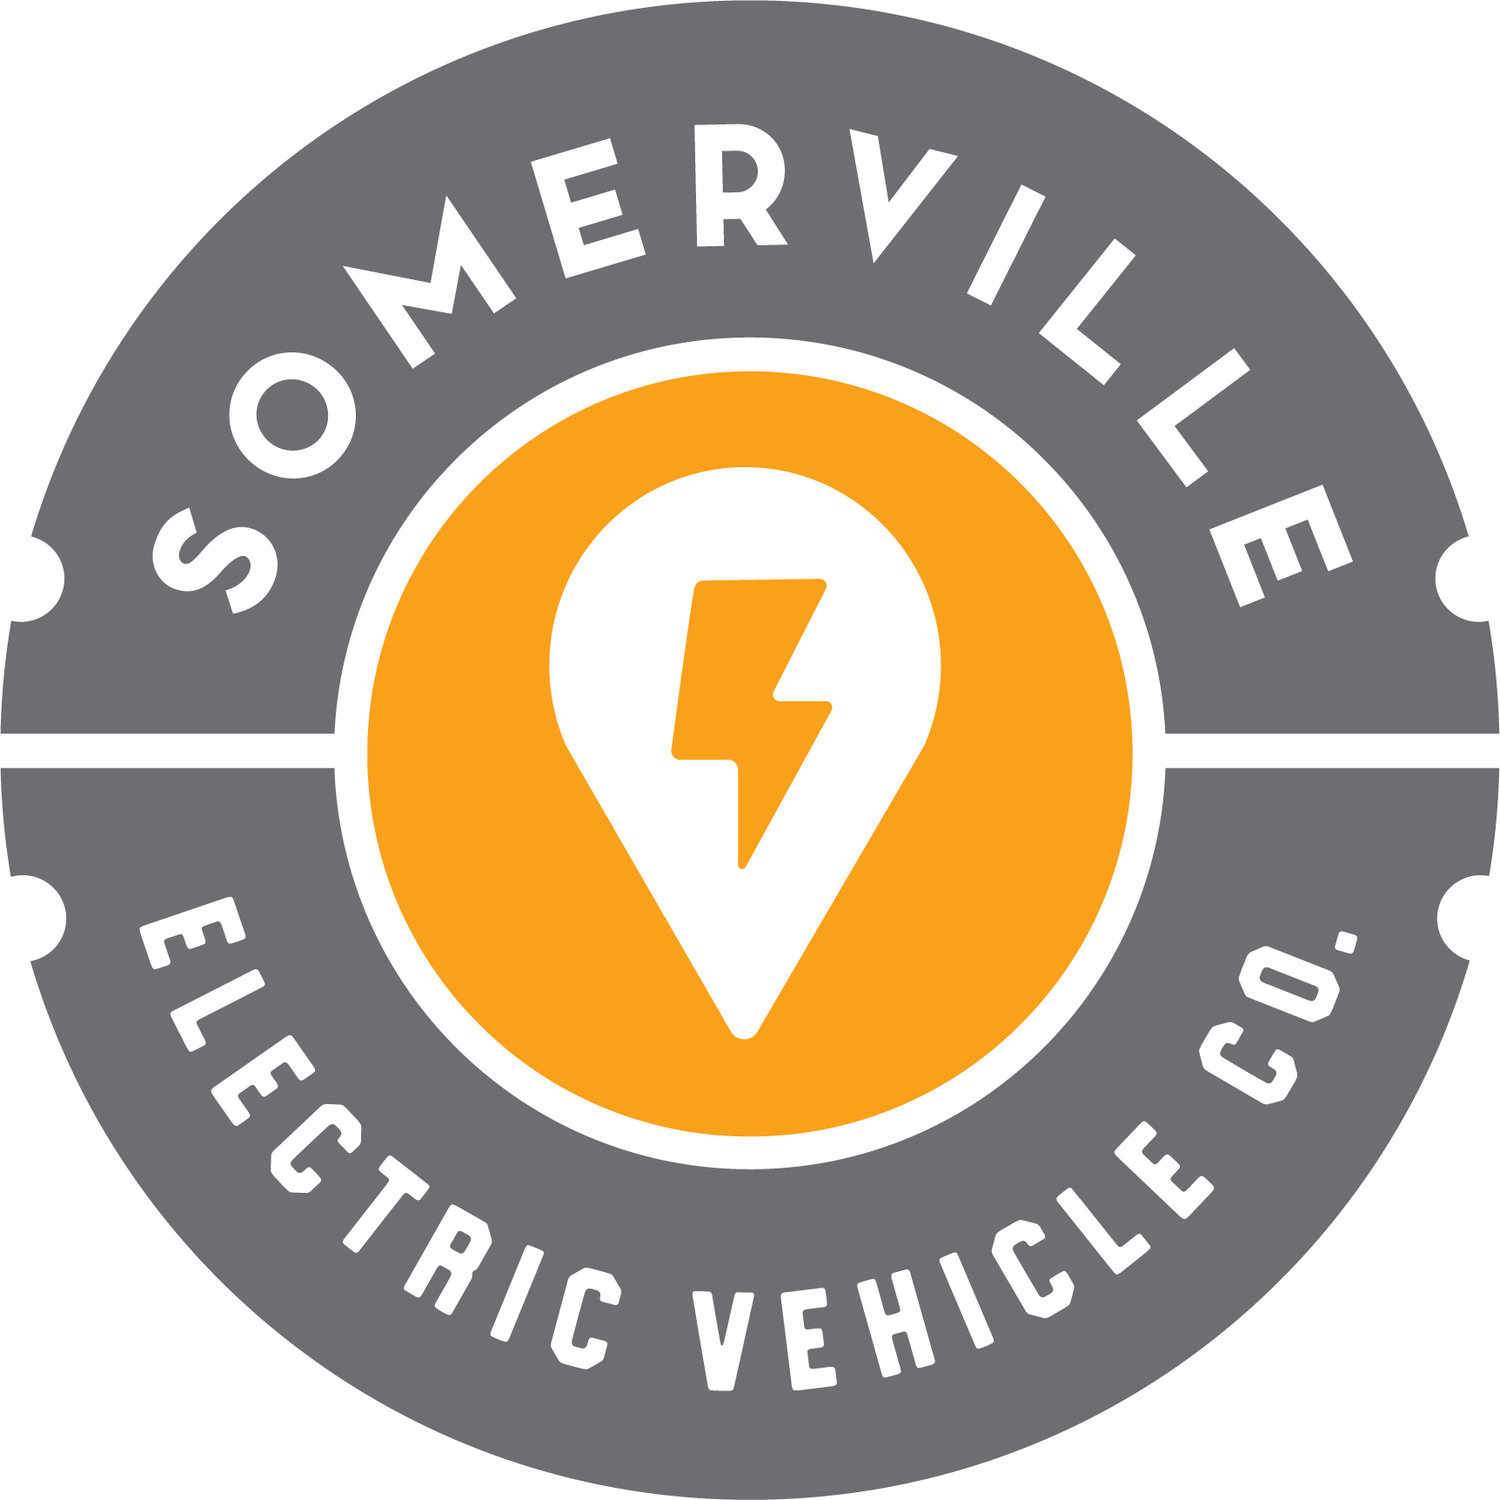 Somerville Electric Vehicle Company